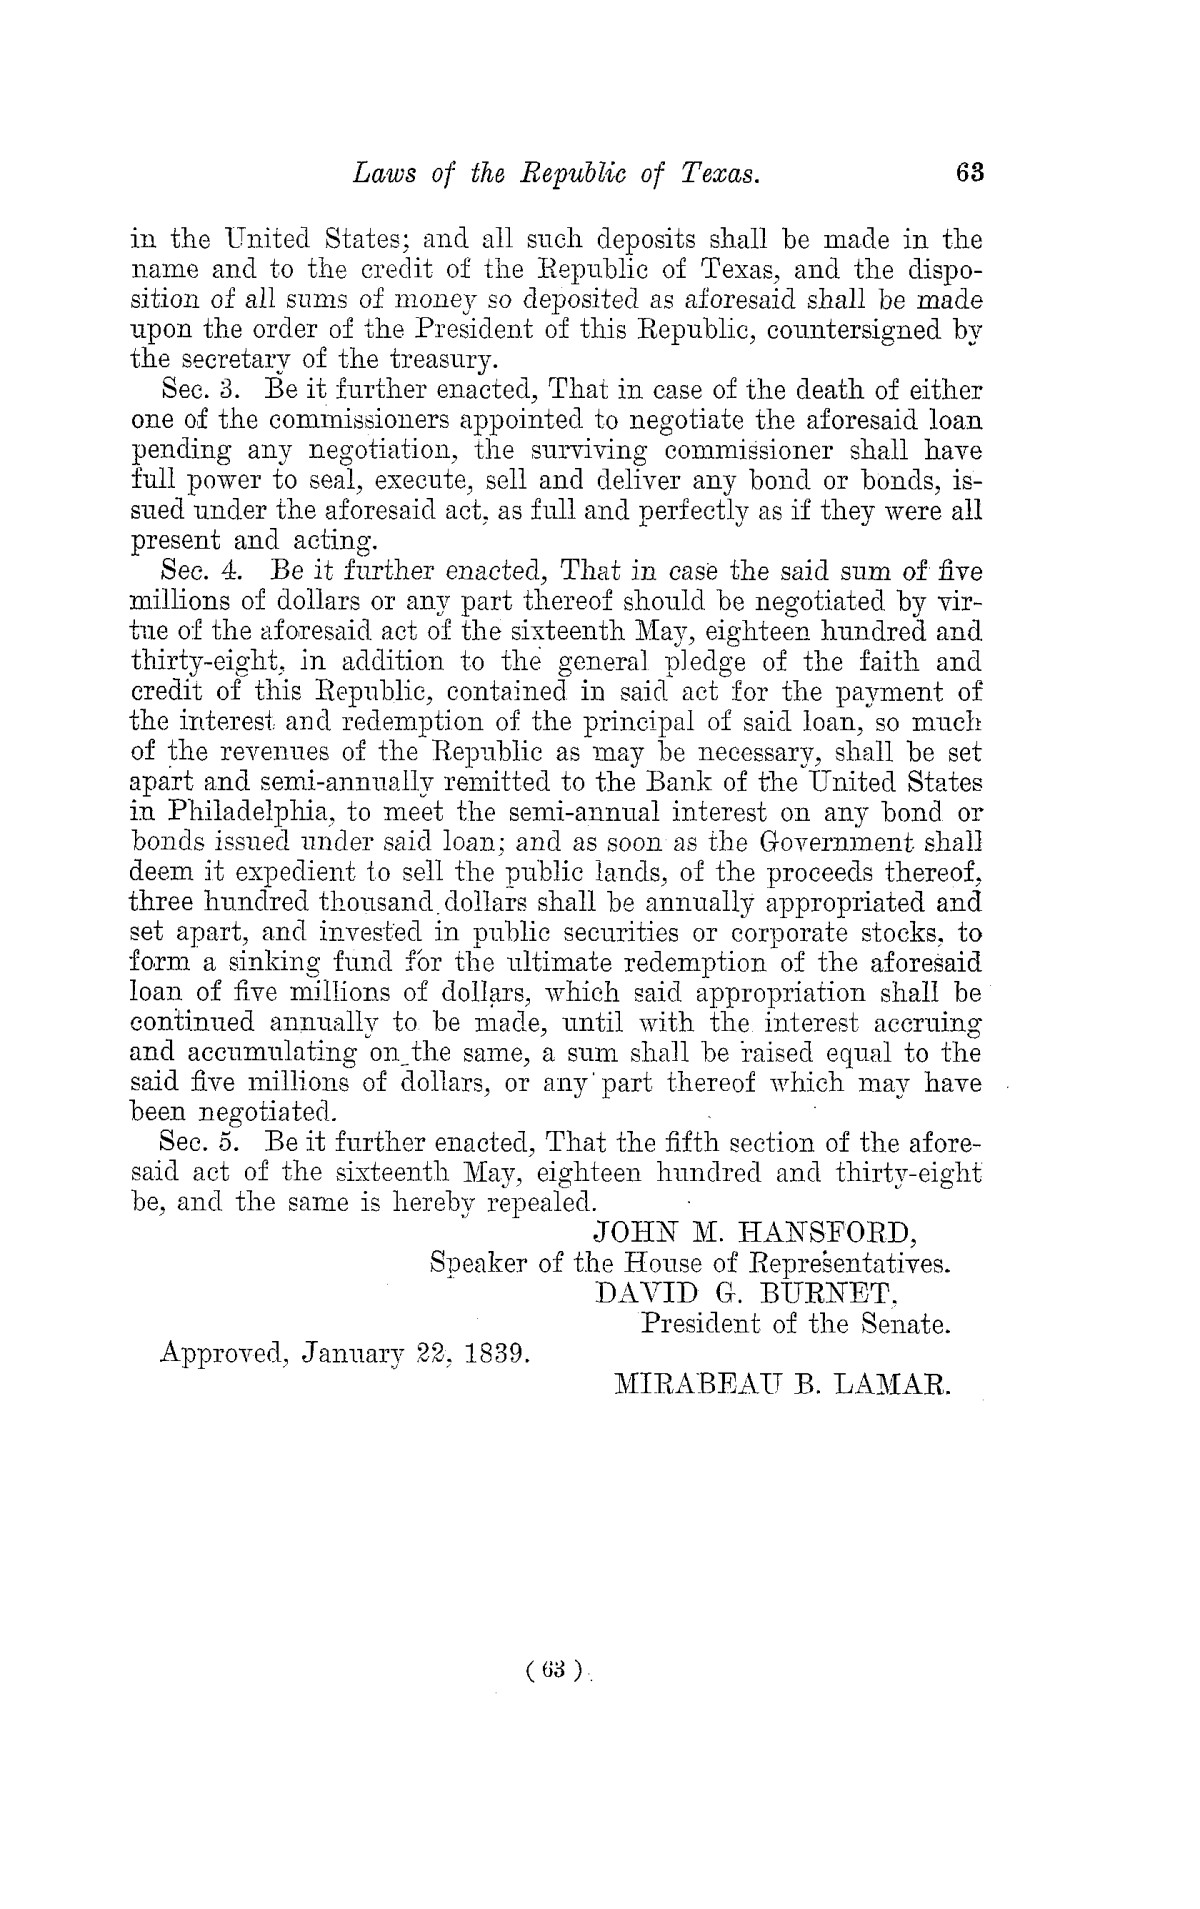 The Laws of Texas, 1822-1897 Volume 2                                                                                                      63